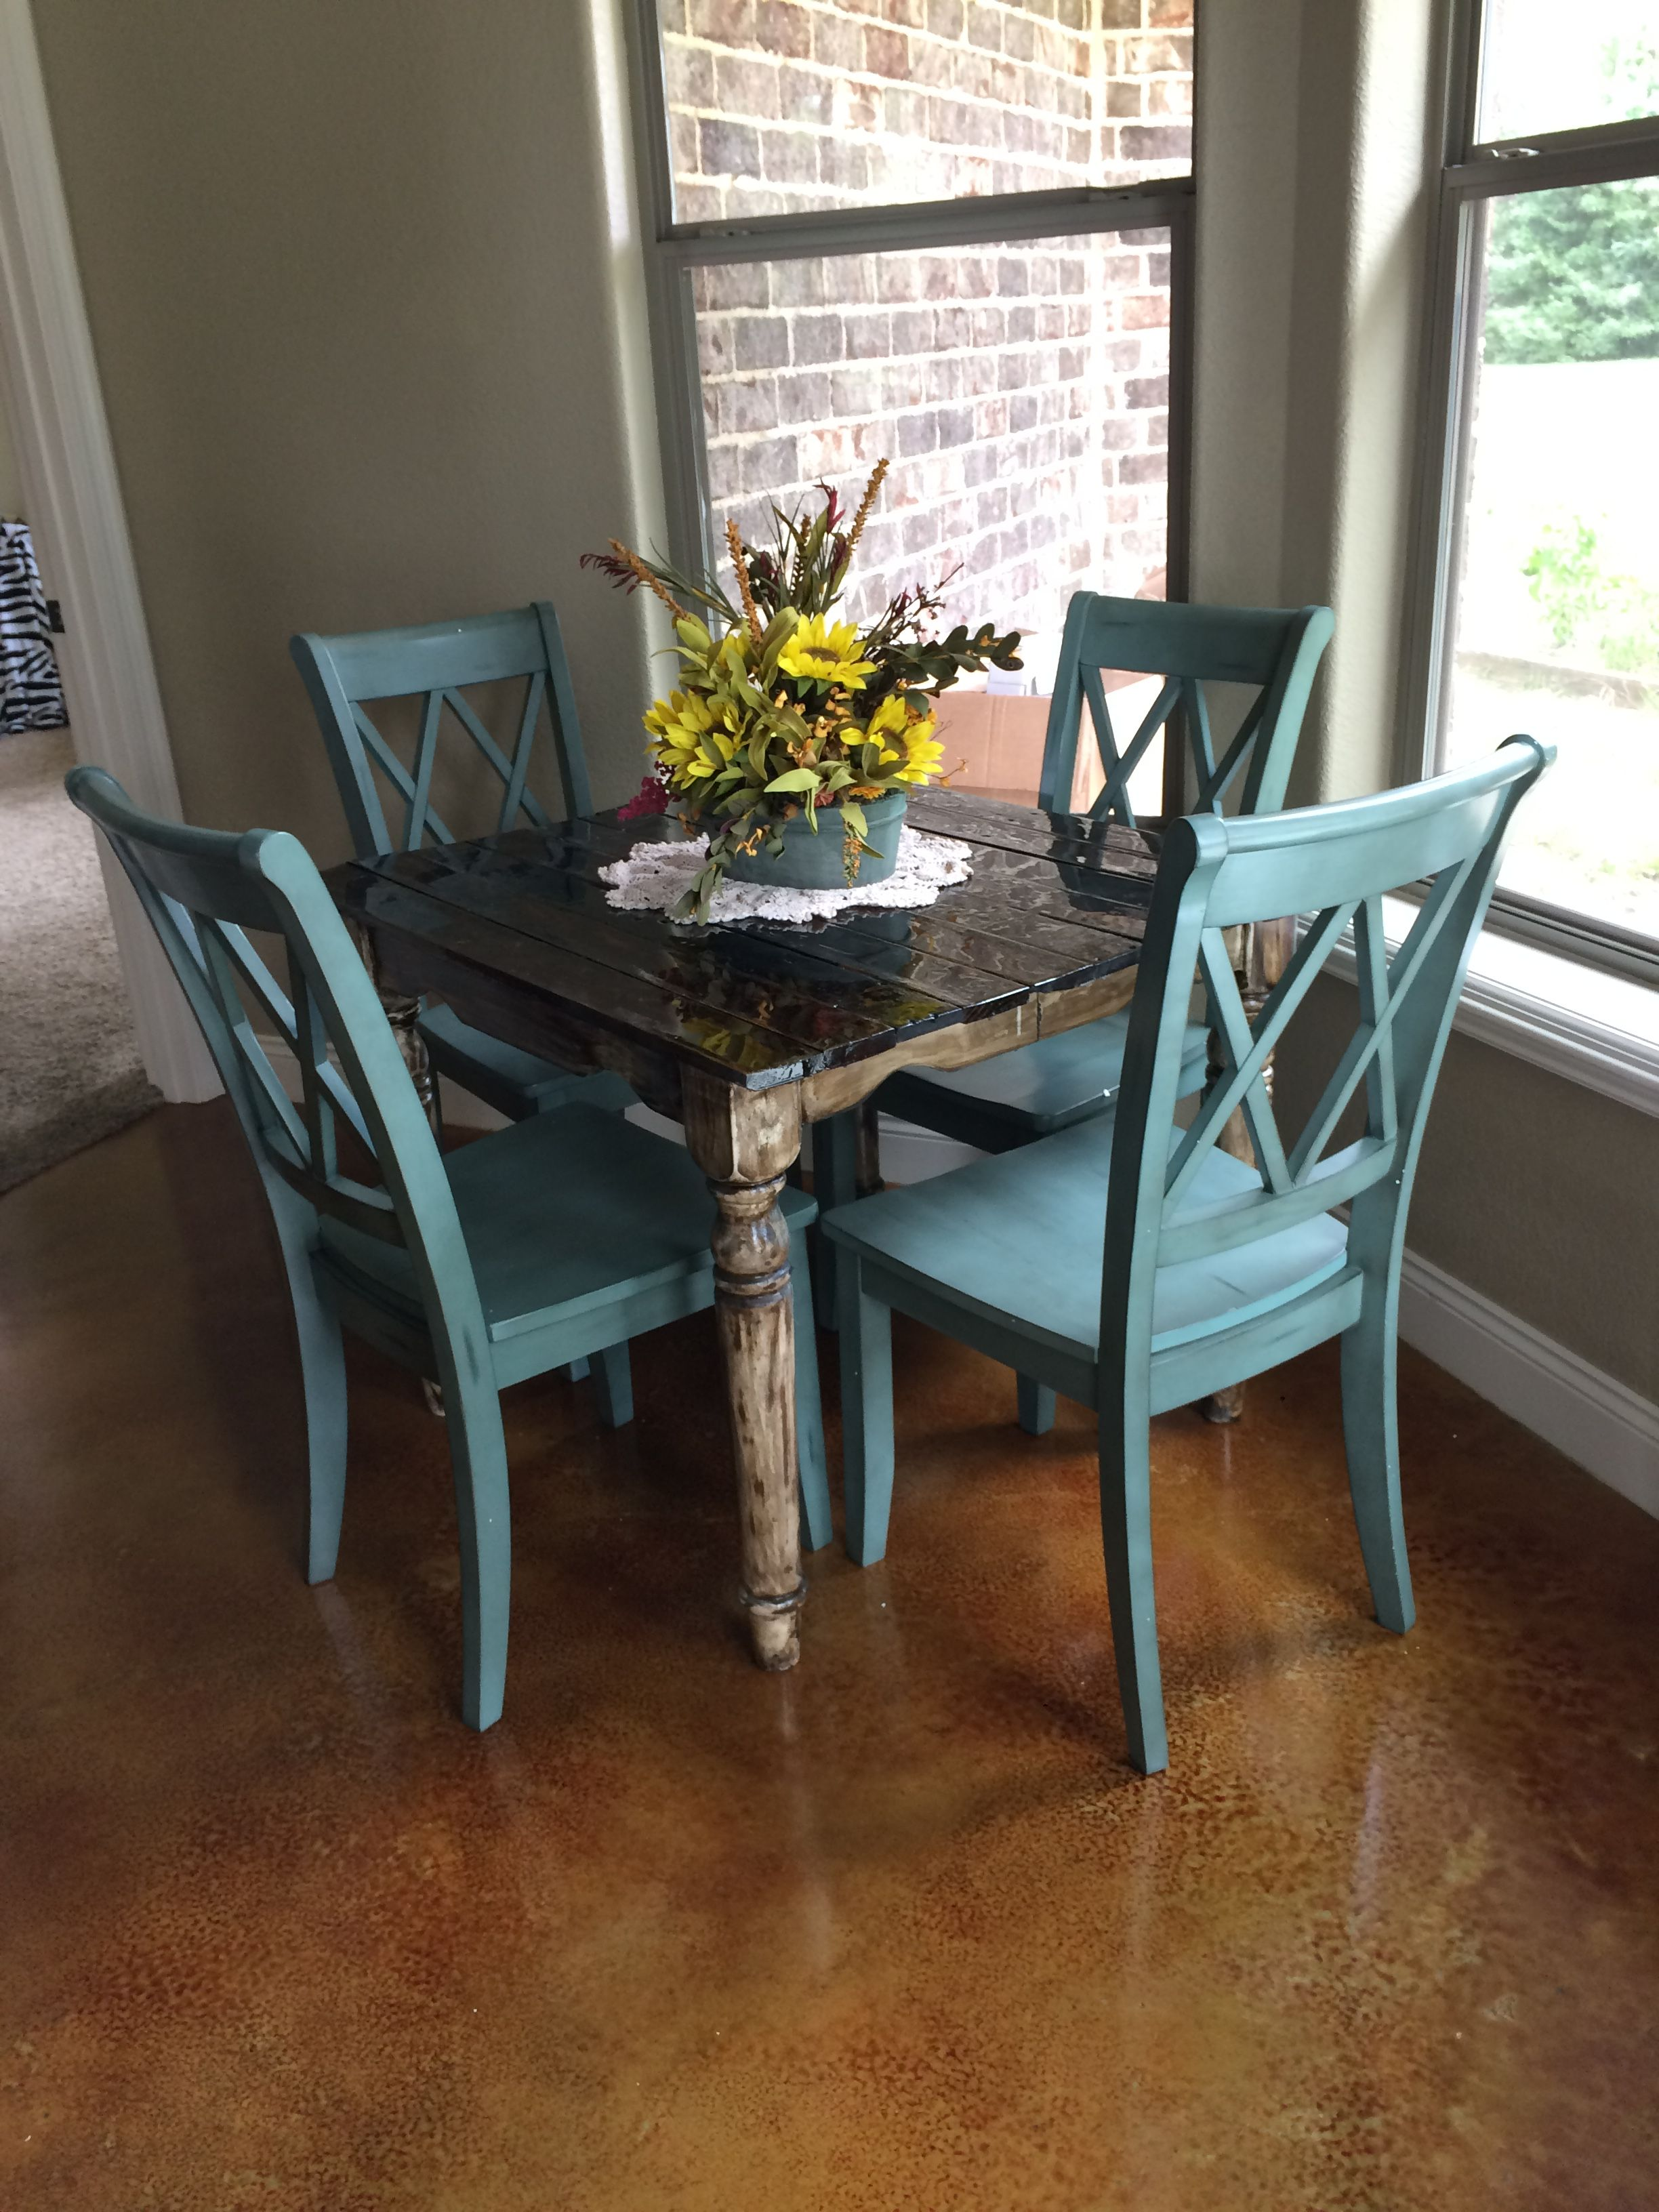 Kitchen Table Makeover Rustic Kitchen Tables Rustic Kitchen Rustic Kitchen Decor